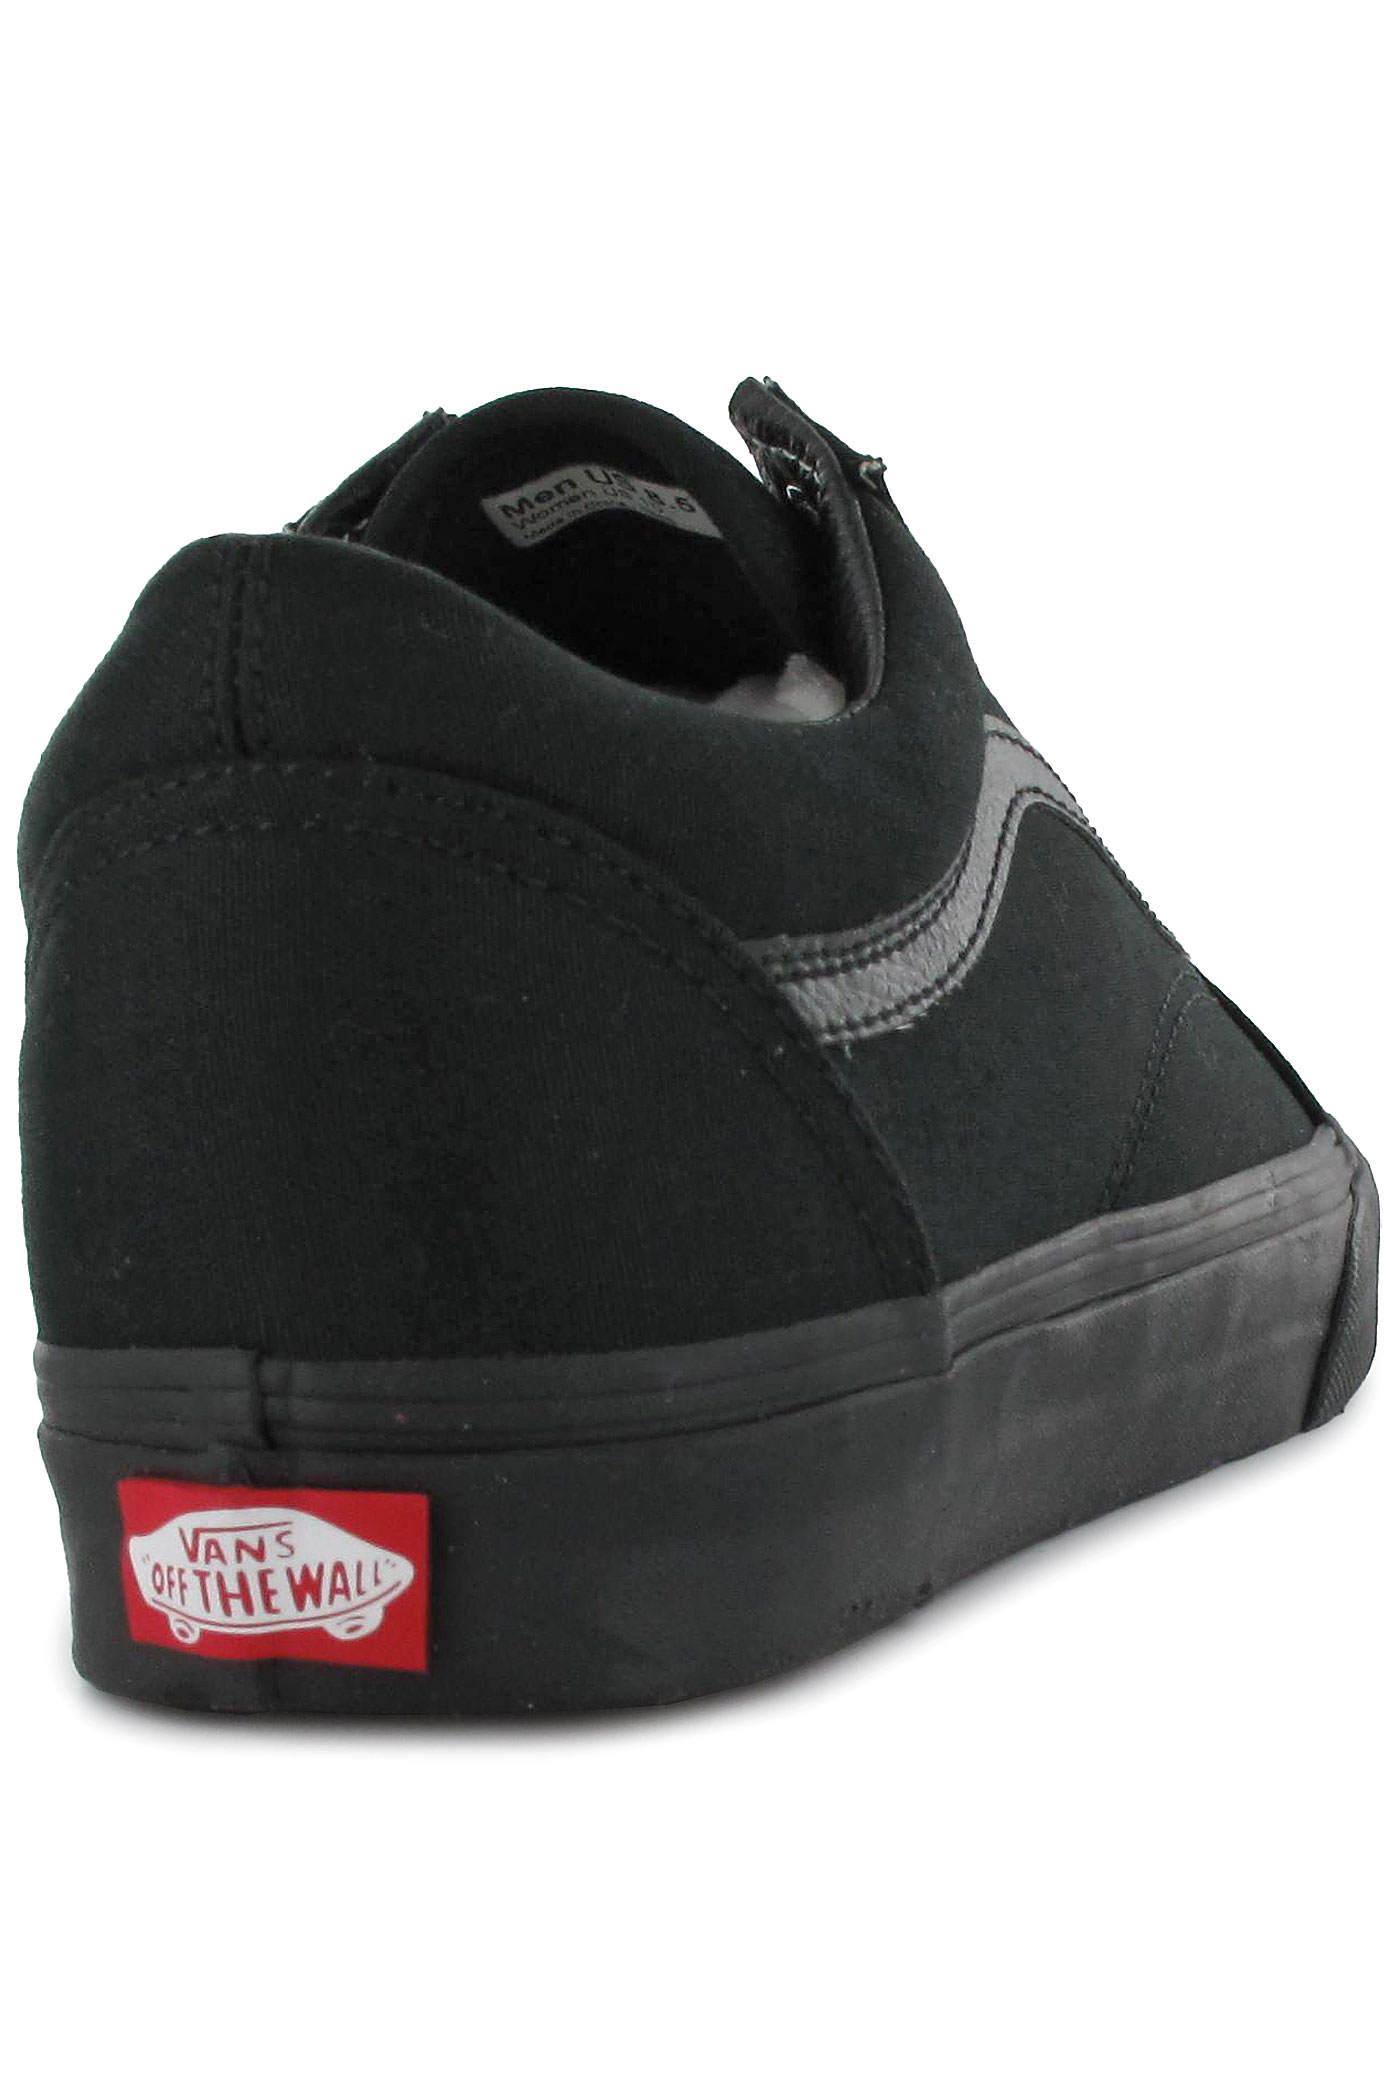 vans snowskate shoes